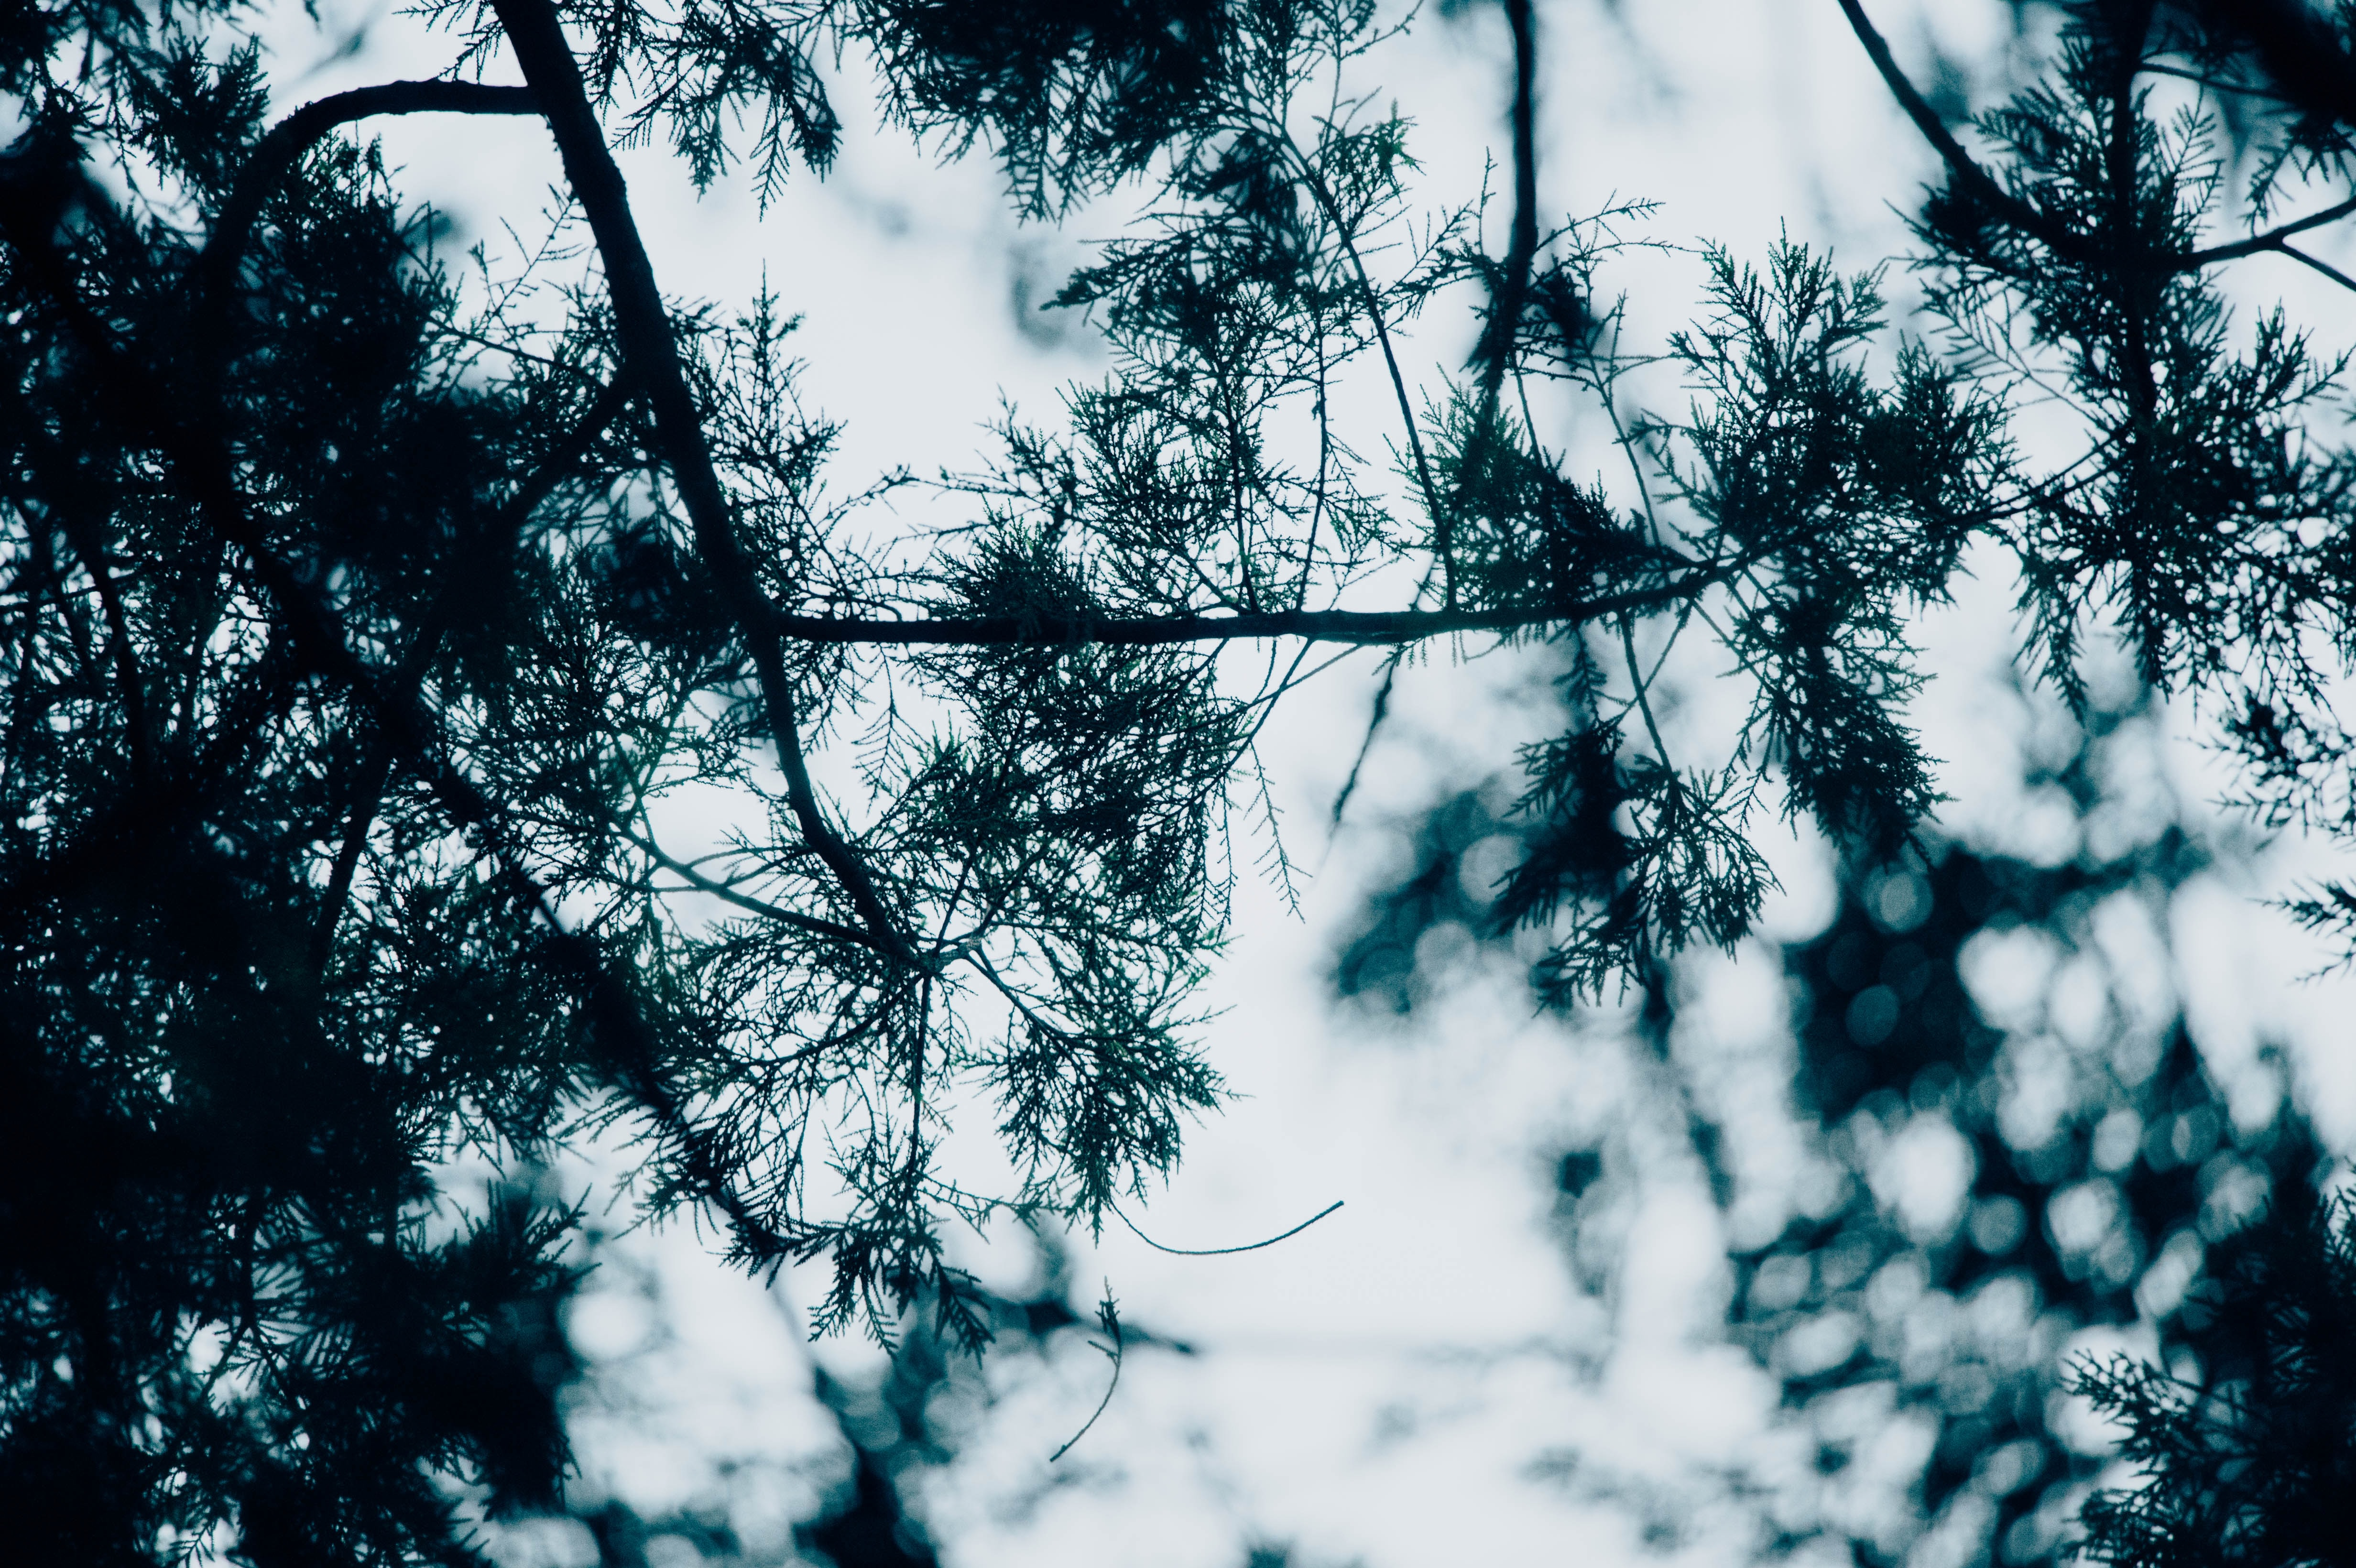 worm's-eye view of green leaves under cloudy sky